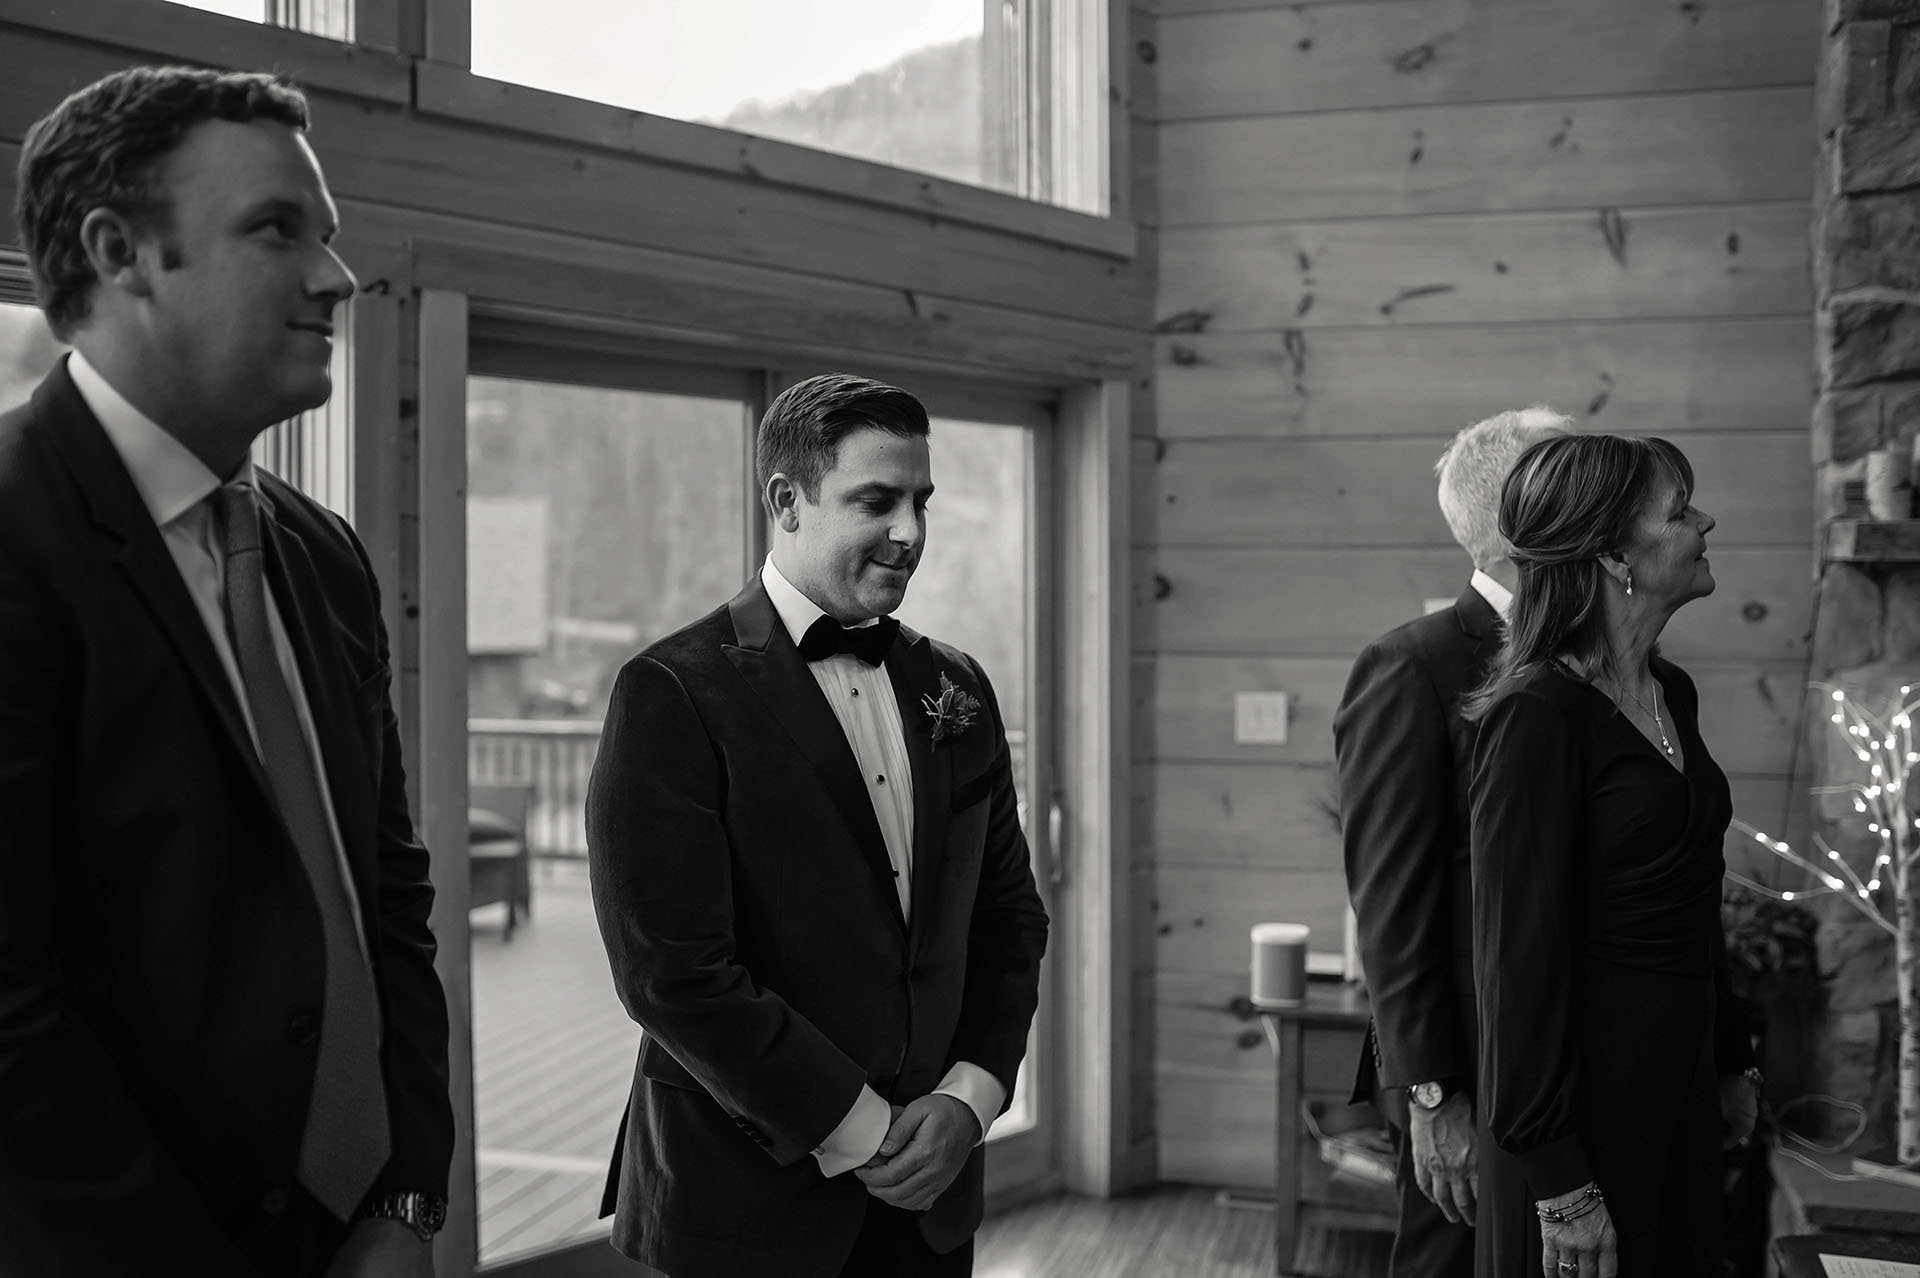 Wedding Photography - Catskills NY | entering the upper hallway leading to the staircase